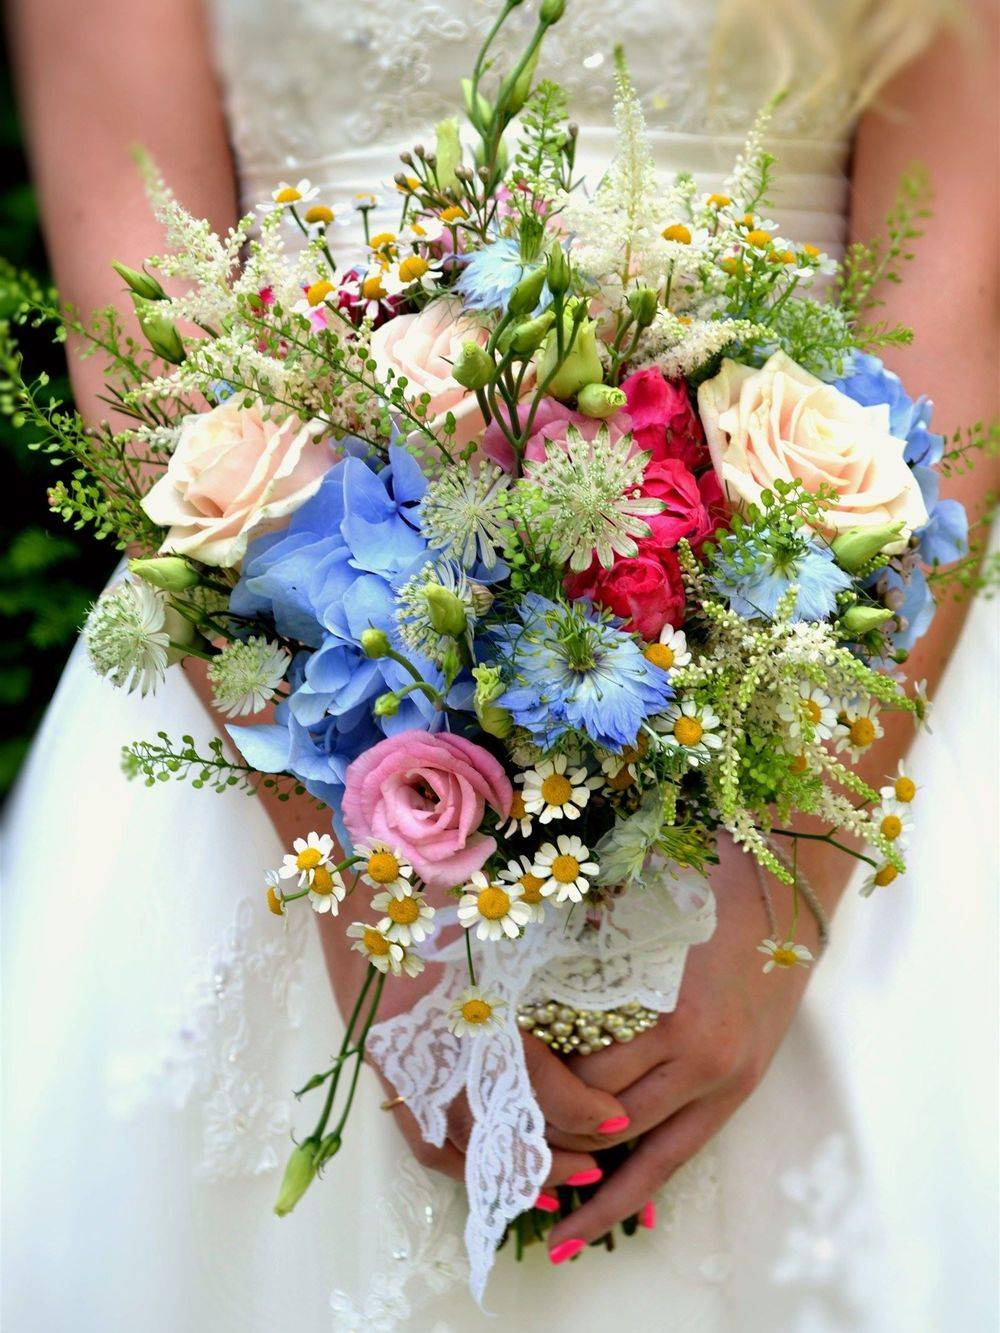 Wedding floristry tuition